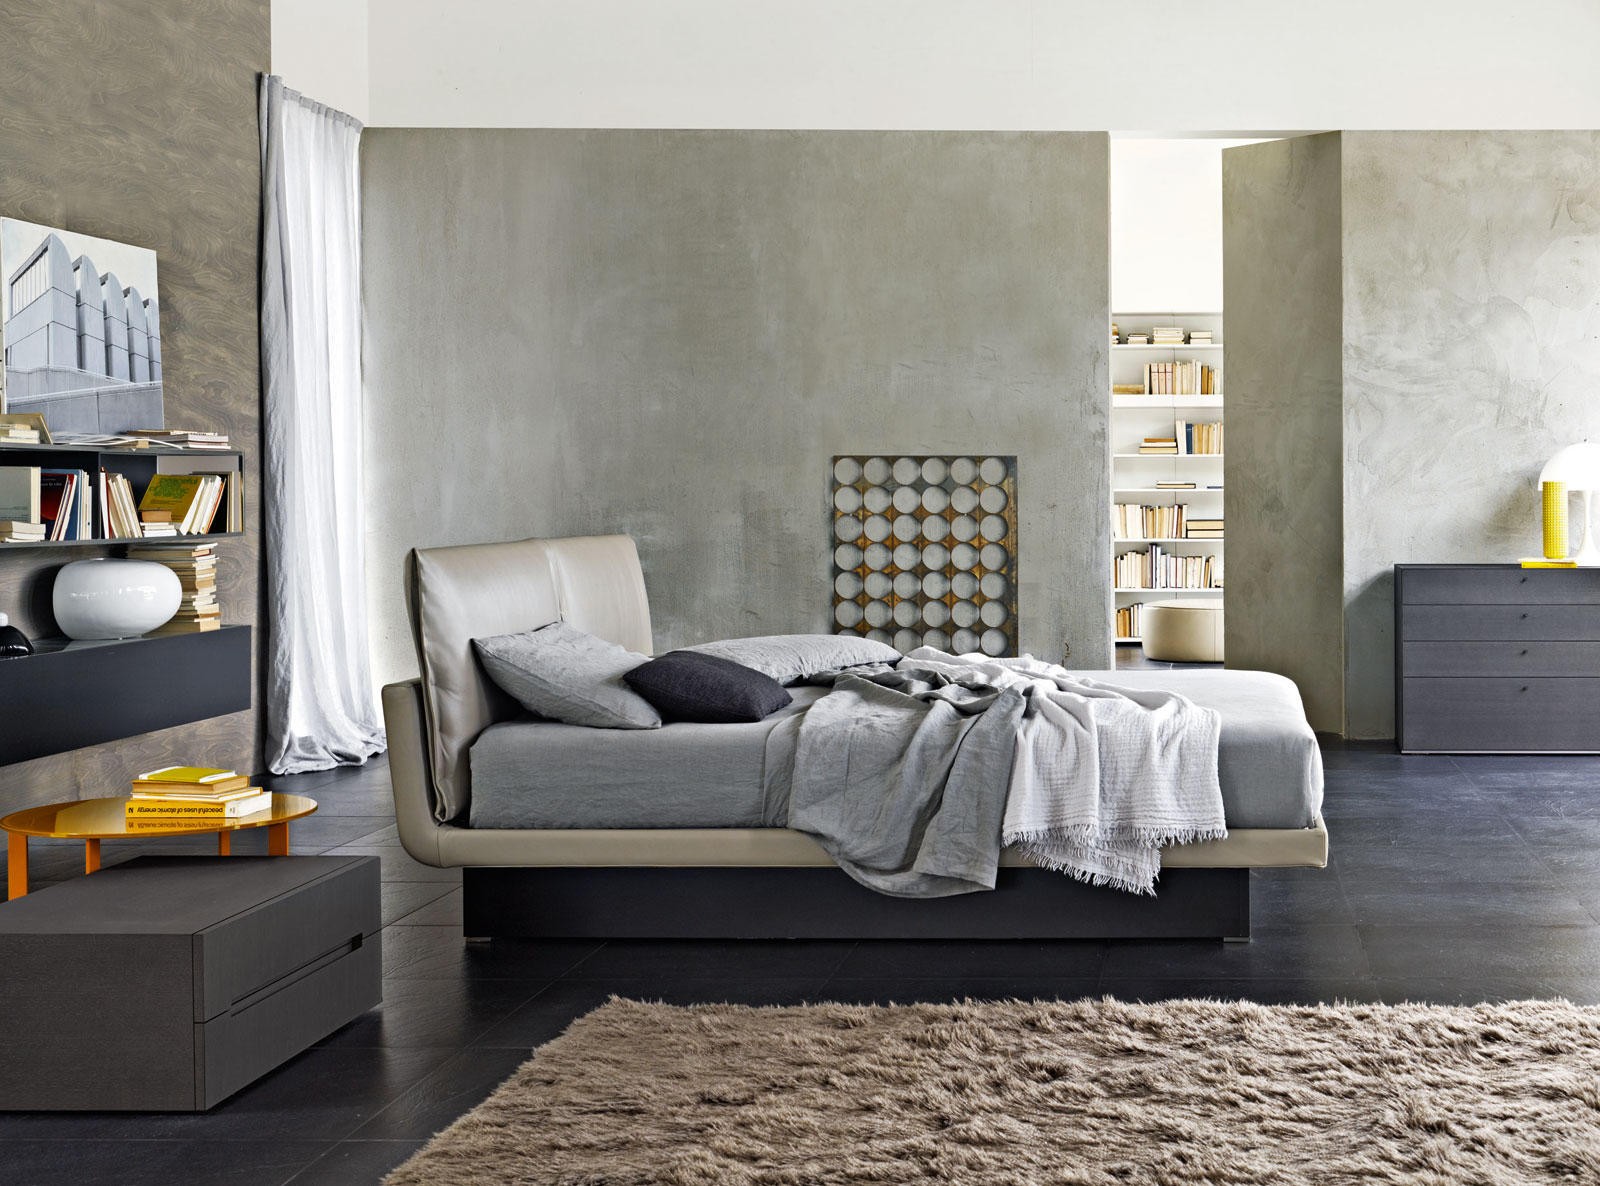 honey doppelbetten von molteni c architonic. Black Bedroom Furniture Sets. Home Design Ideas